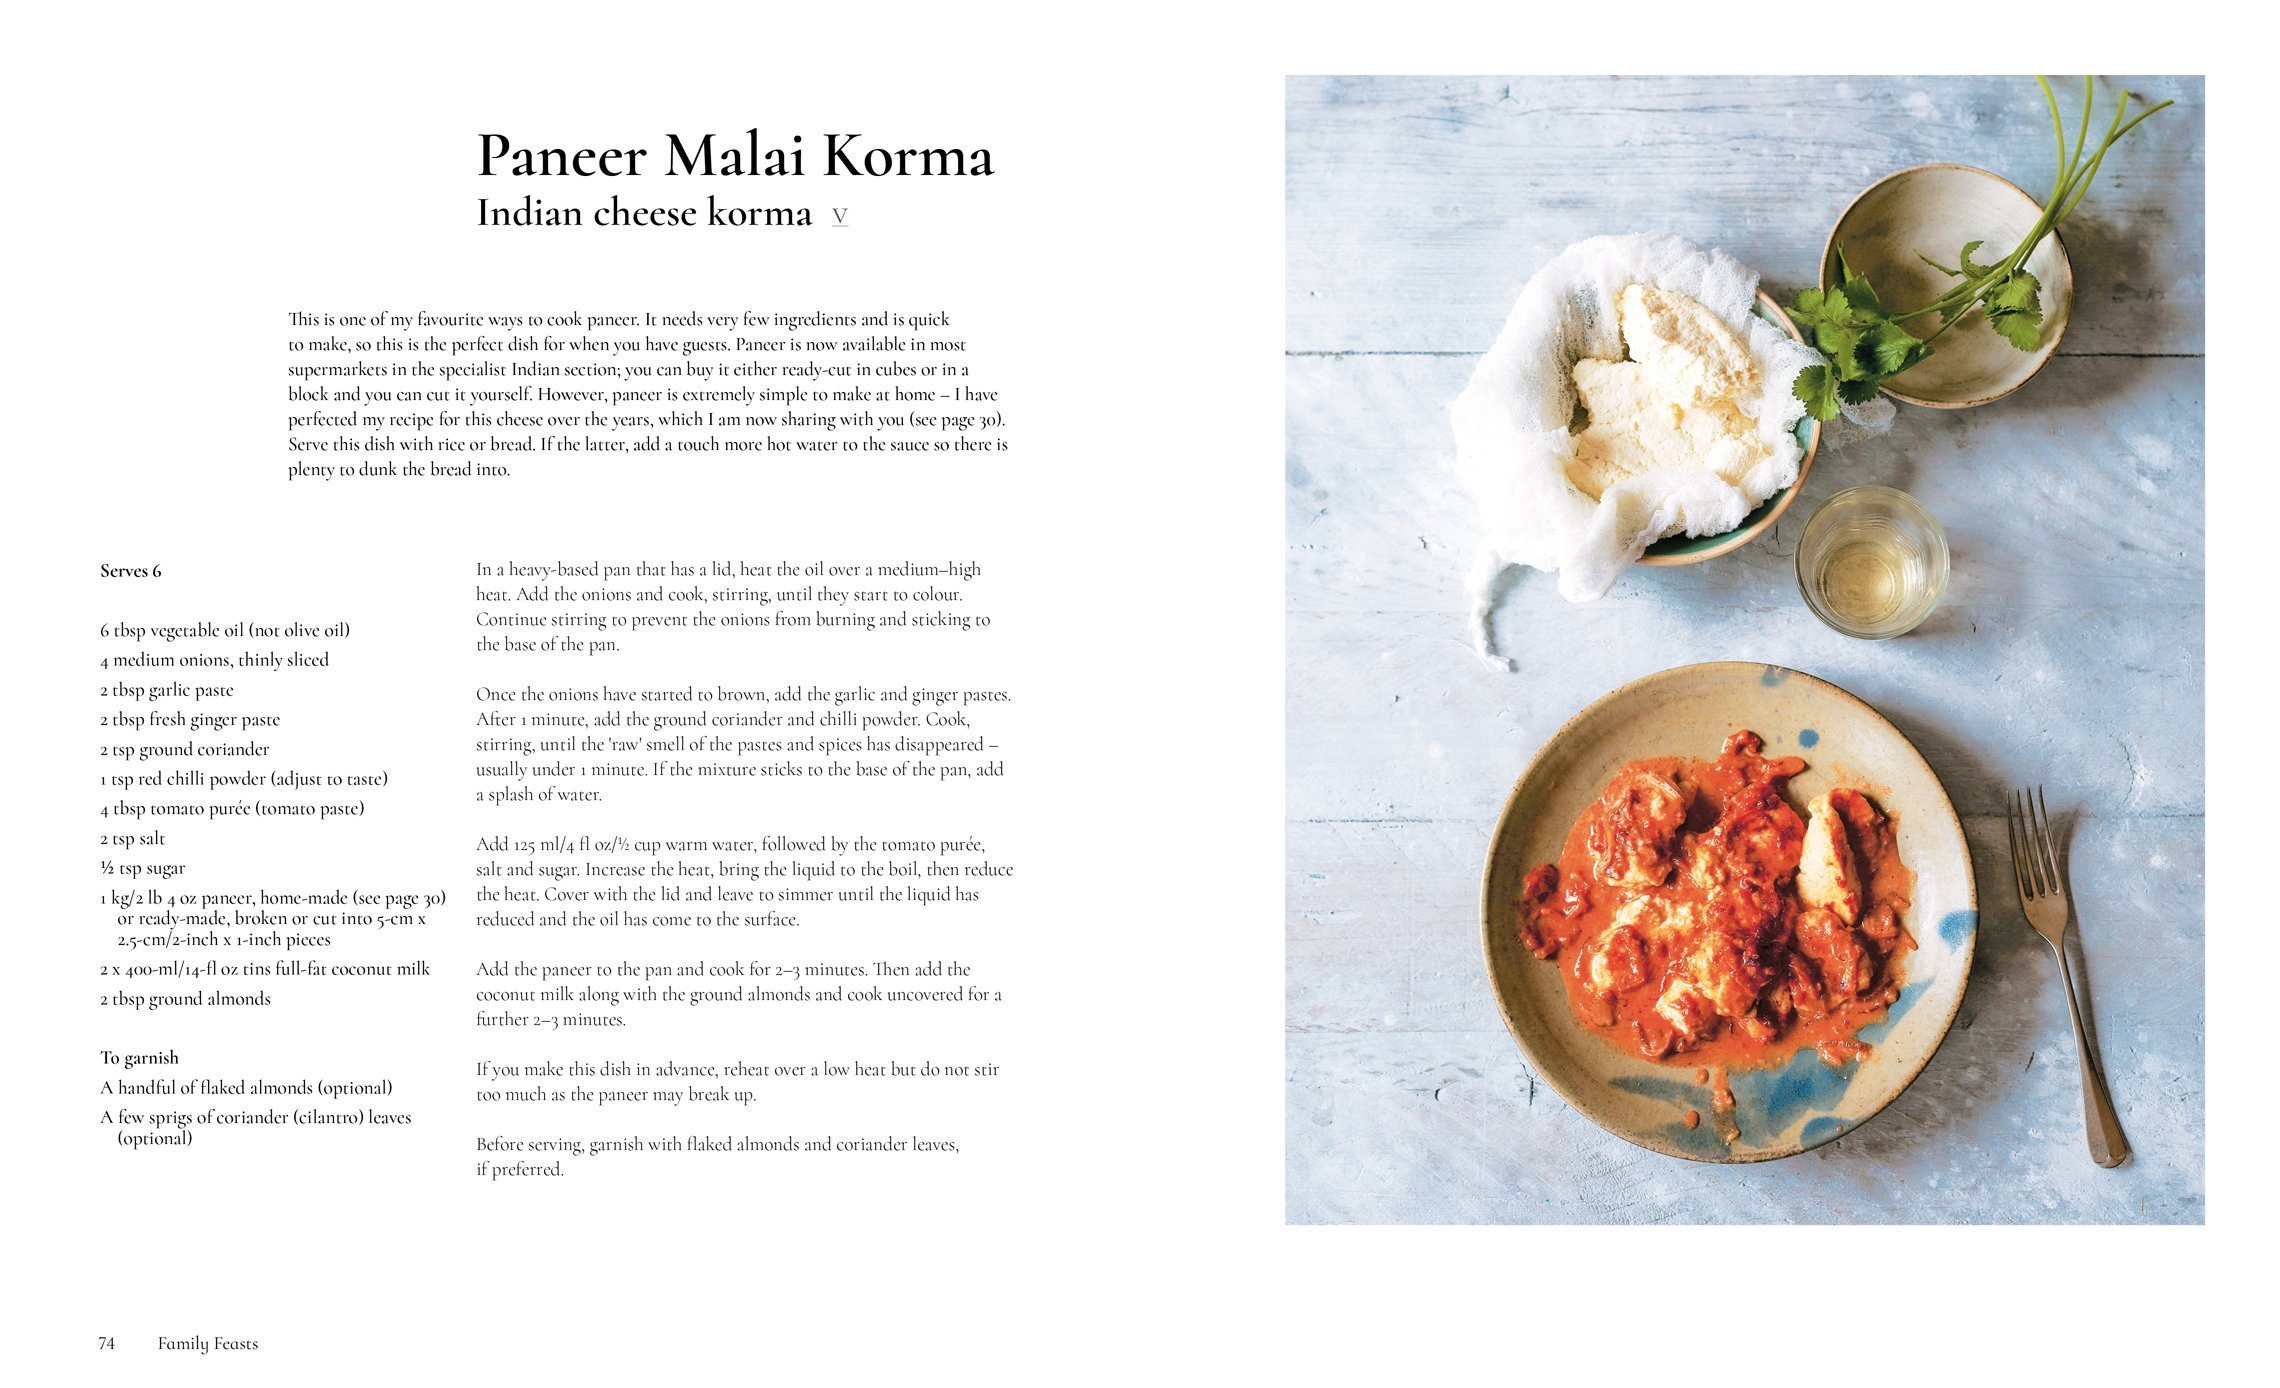 Asma's Indian Kitchen: Home-cooked food brought to you by Darjeeling Express 5